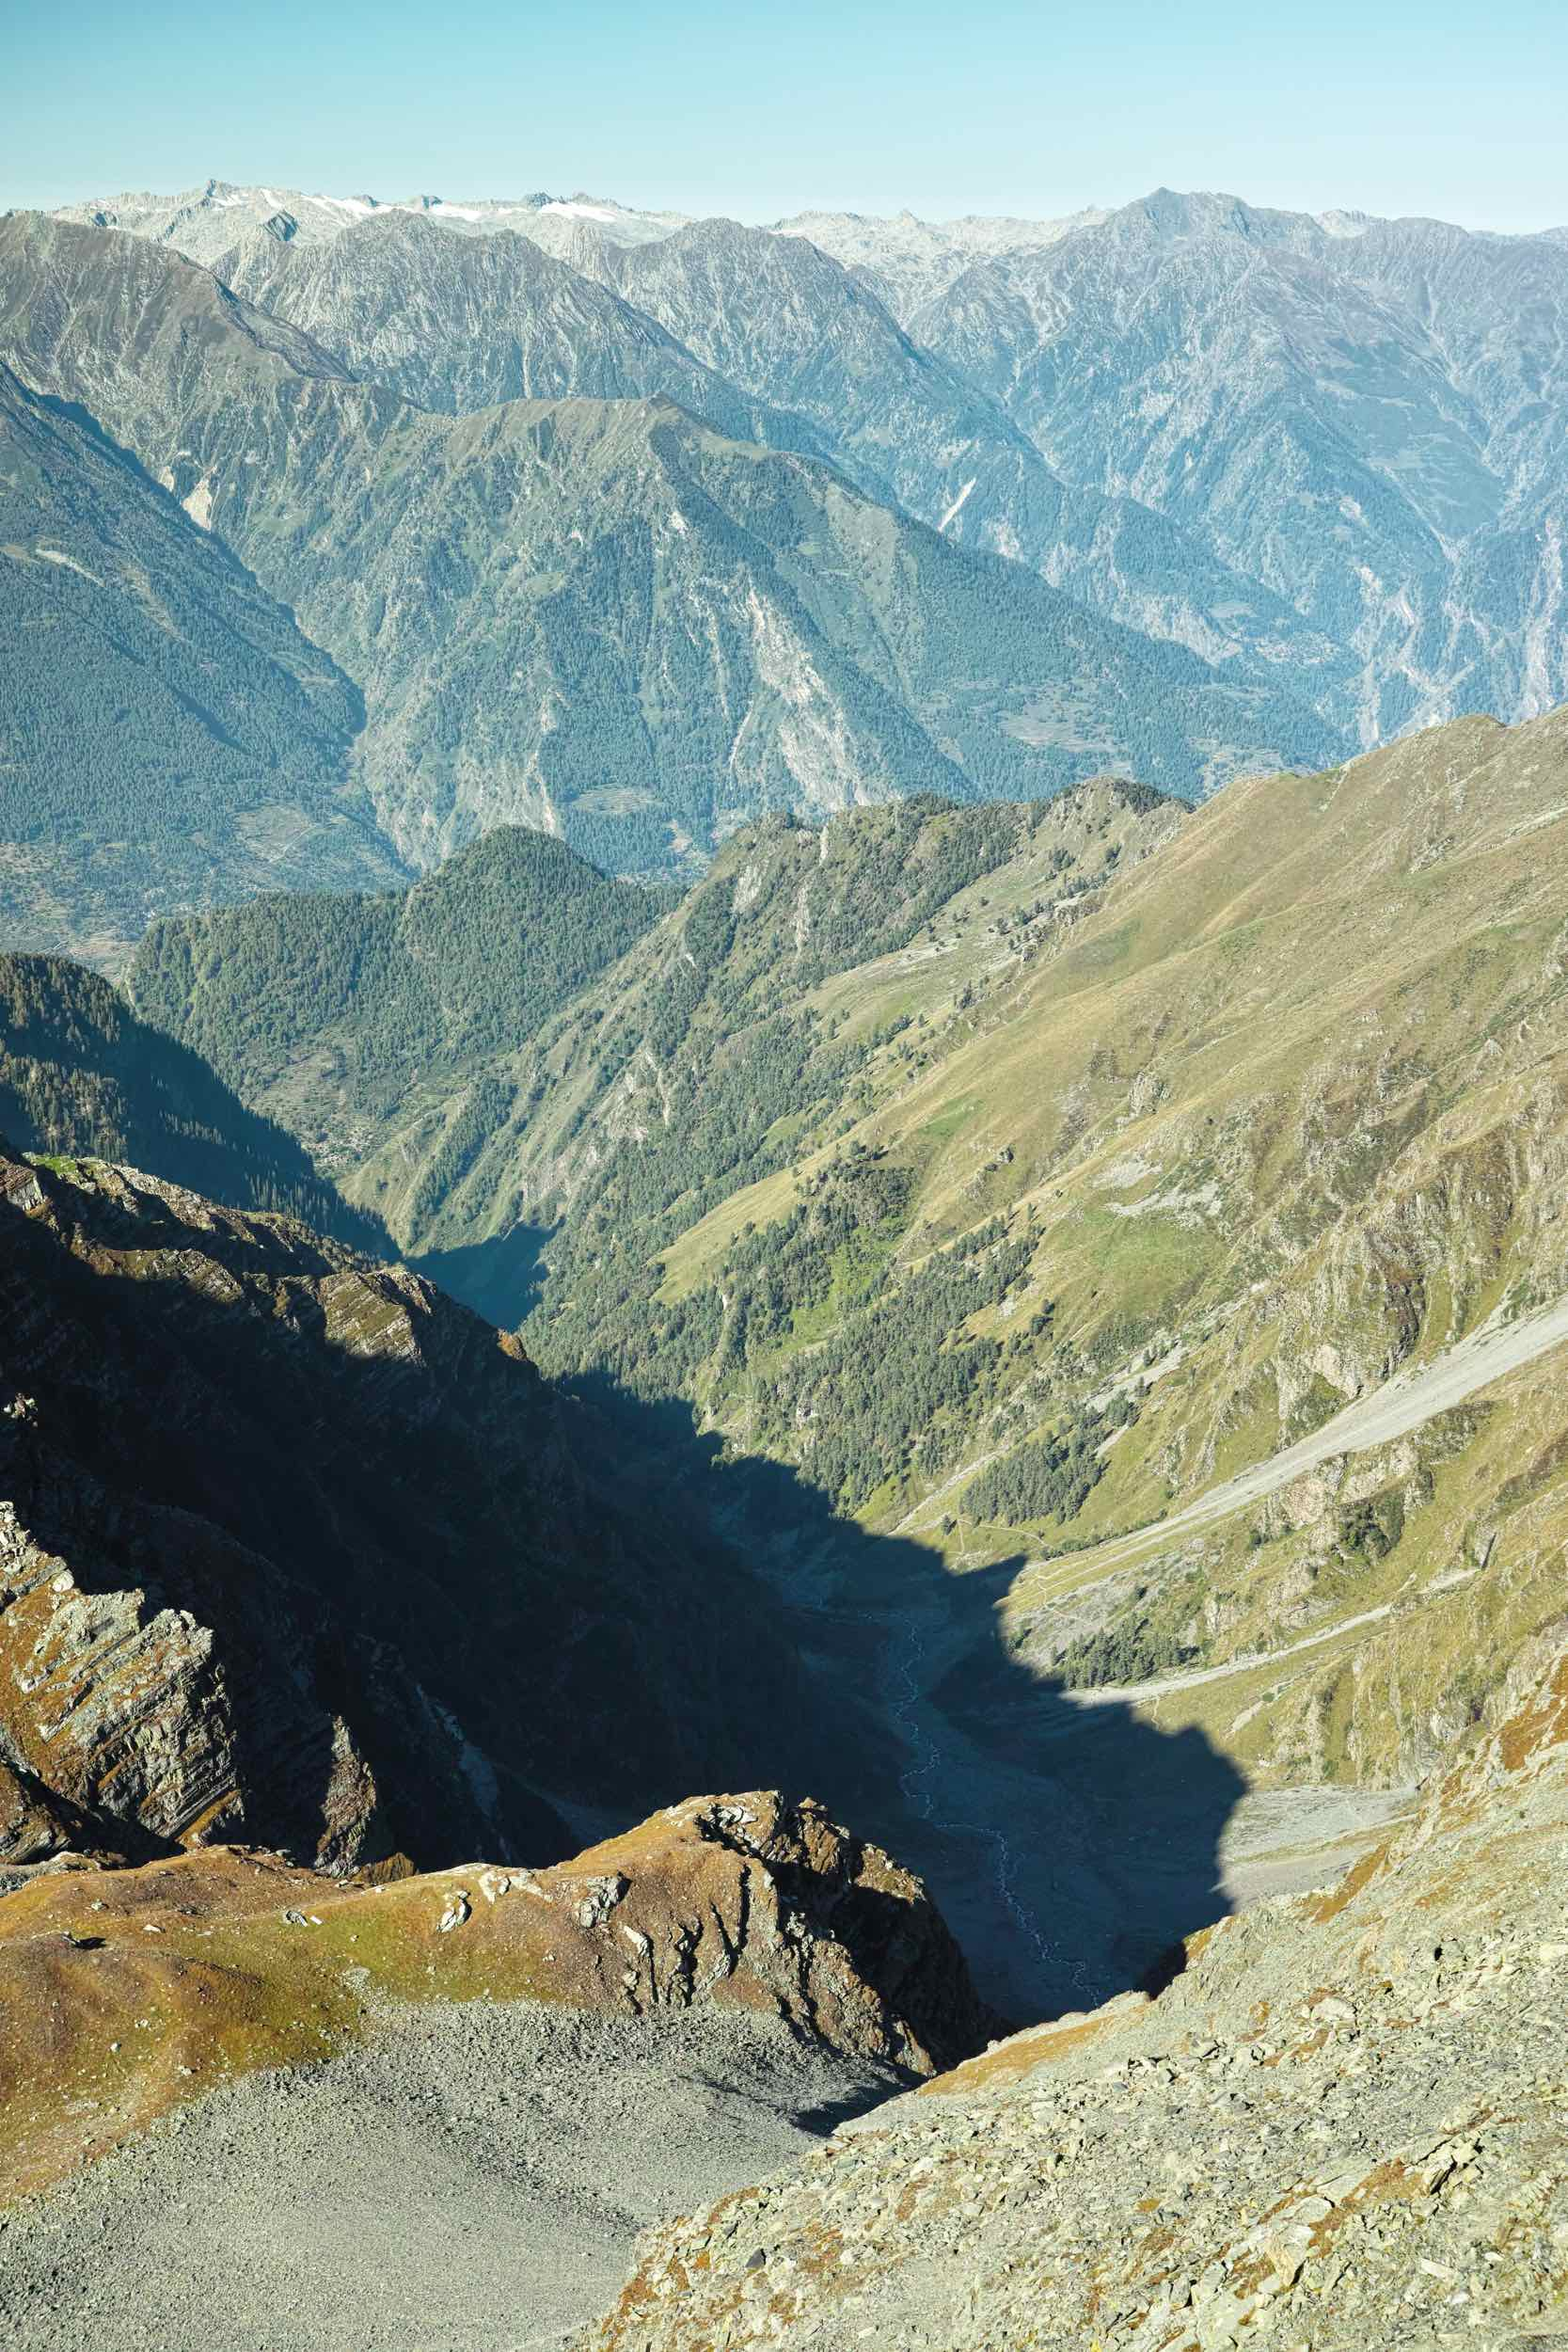 The view south from Kalah Pass. Zoom in to see the trail towards